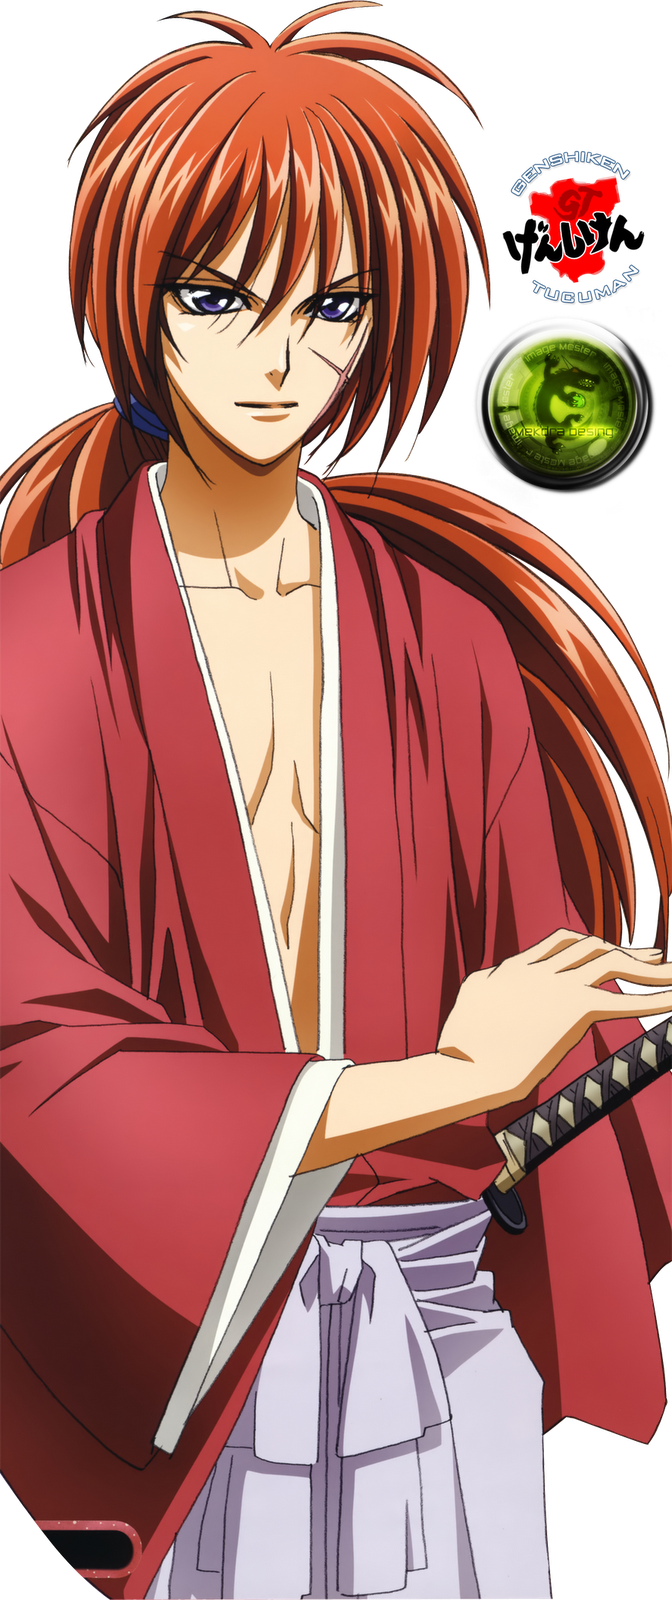 Himura Kenshin known as the legendary hitokiri of the Meiji Revolution Himura Battōsai 緋村抜刀斎 is the main protagonist and titular character of the